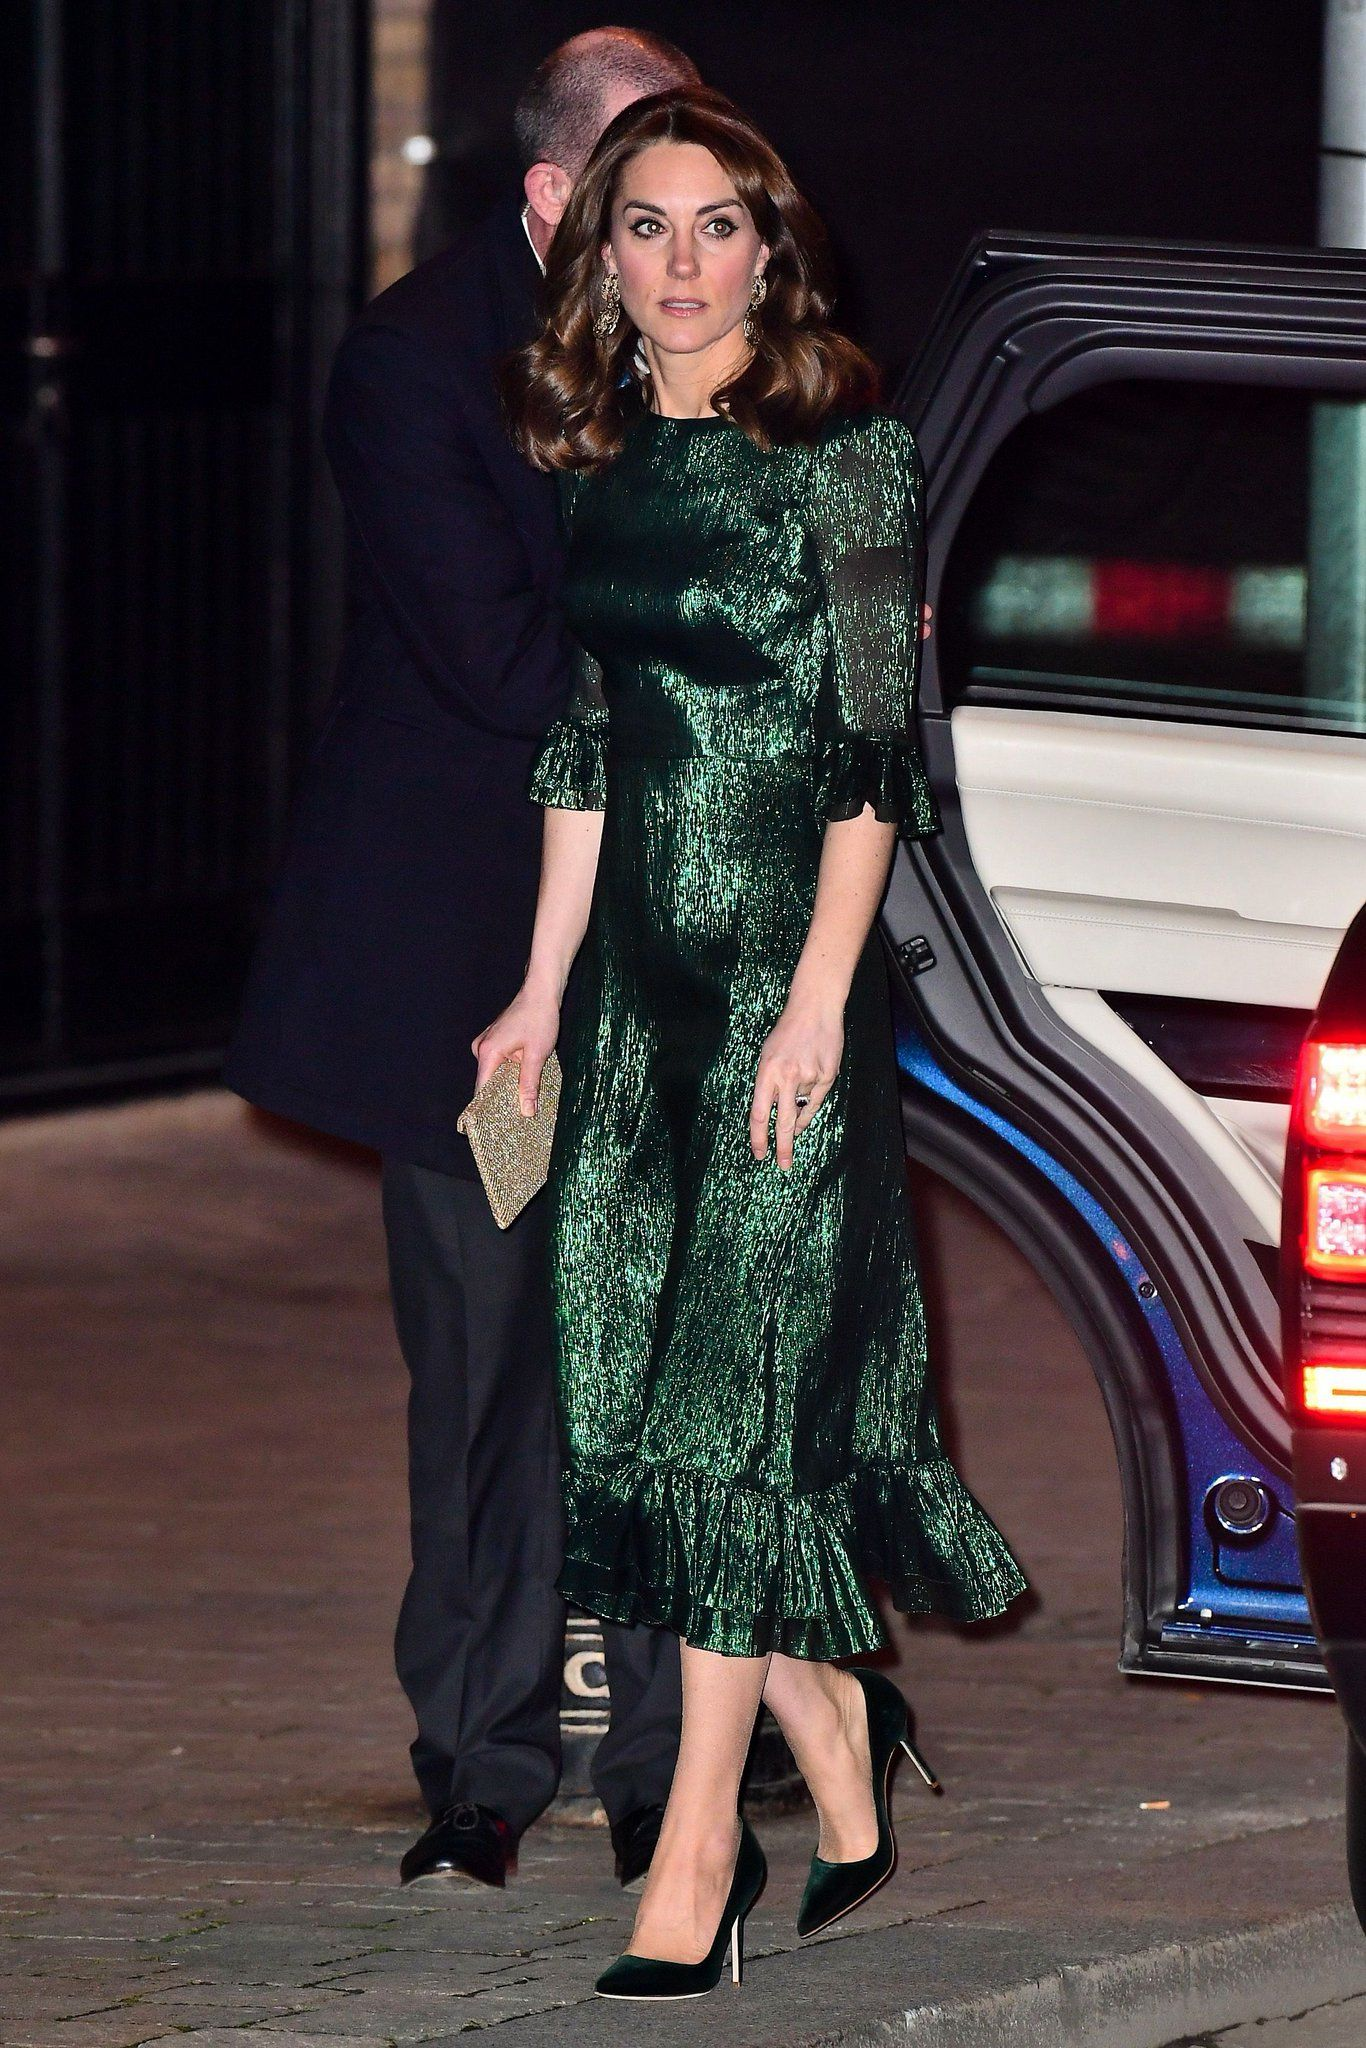 Pin by Betty Goody on Prince William and Kate Middelton in